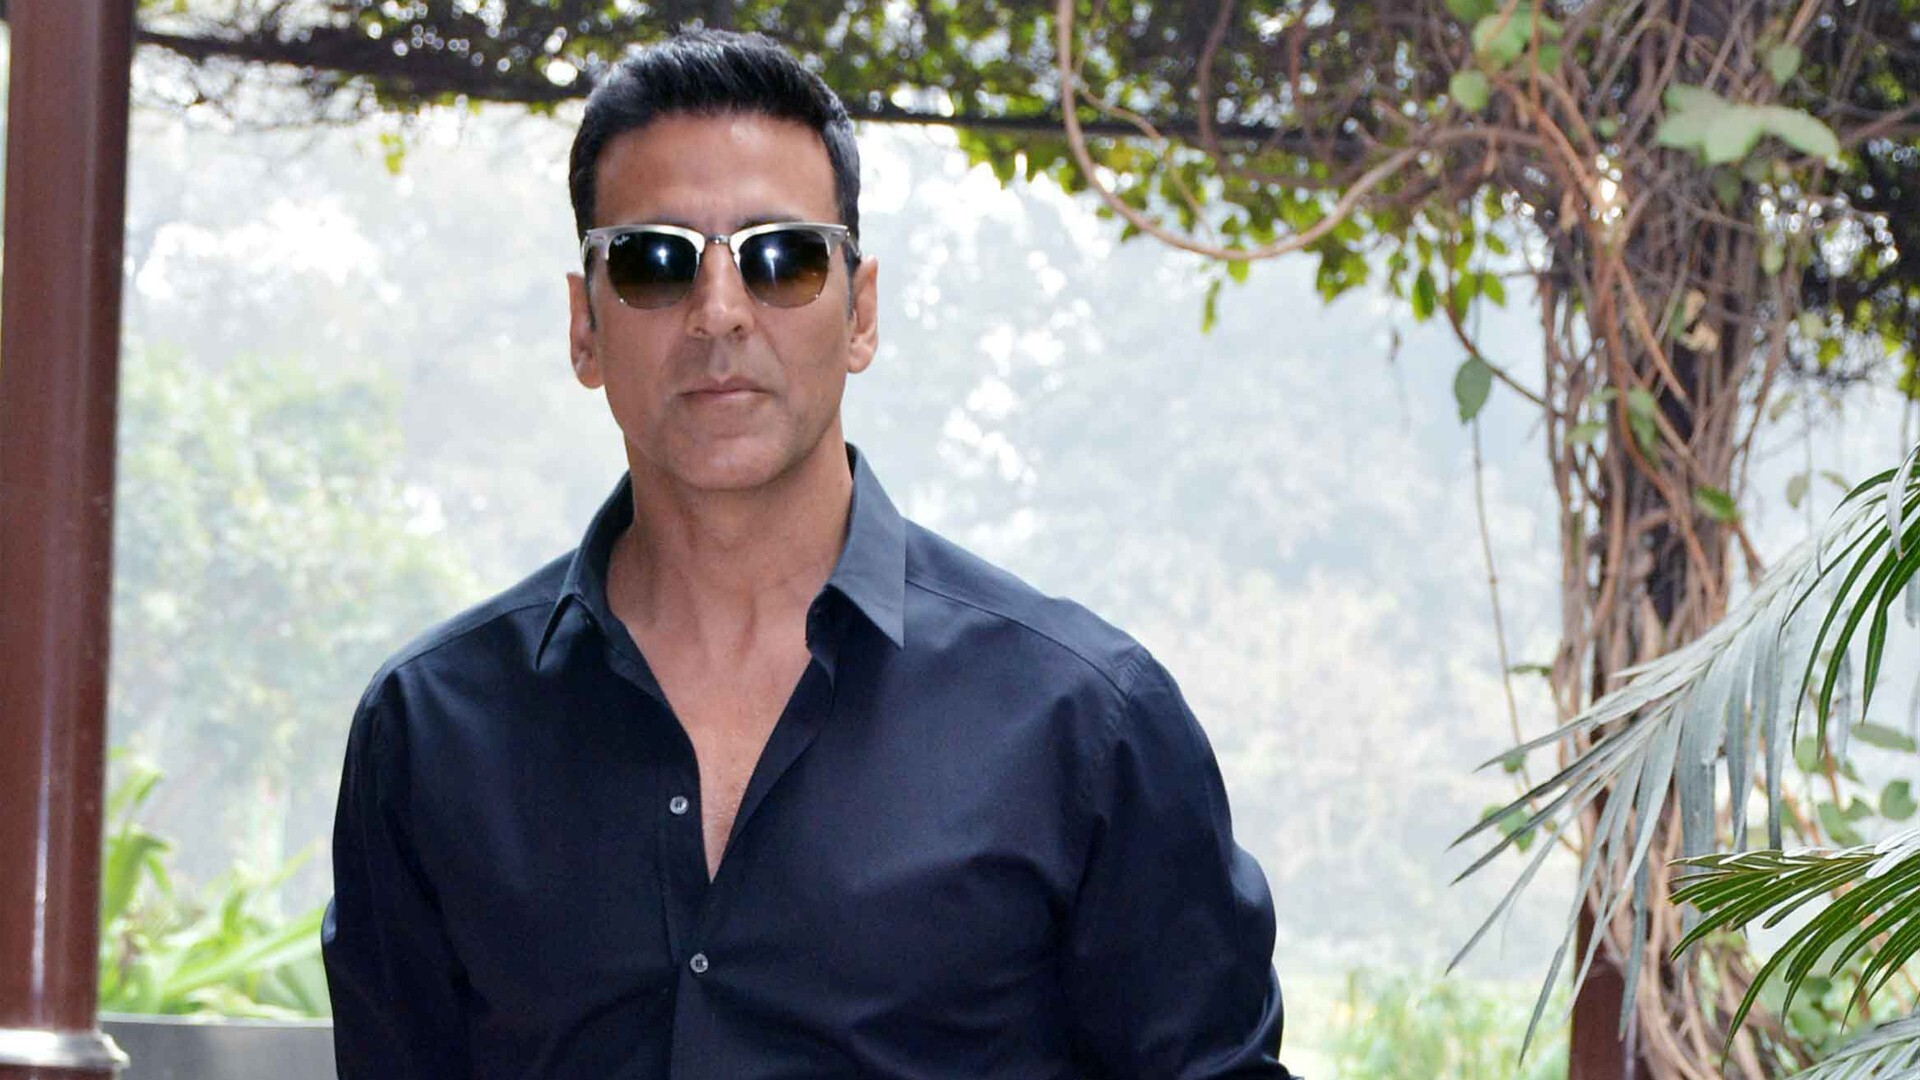 akshay kumar wallpapers | free download bollywood actors hd images